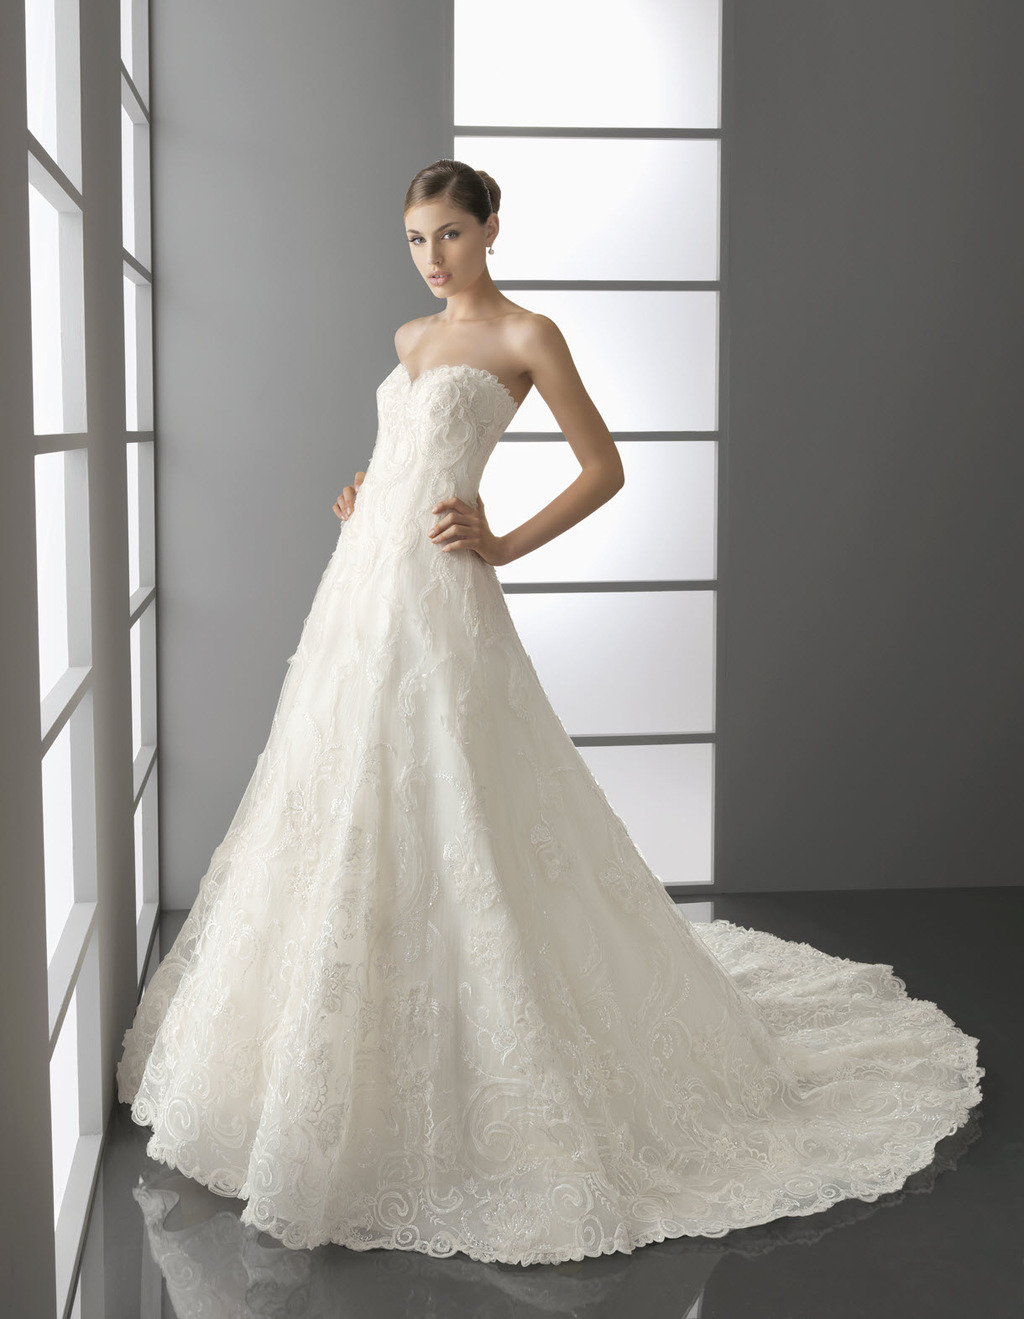 Pacifico-wedding-dress-spring-2012-aire-barcelona-sweetheart.full